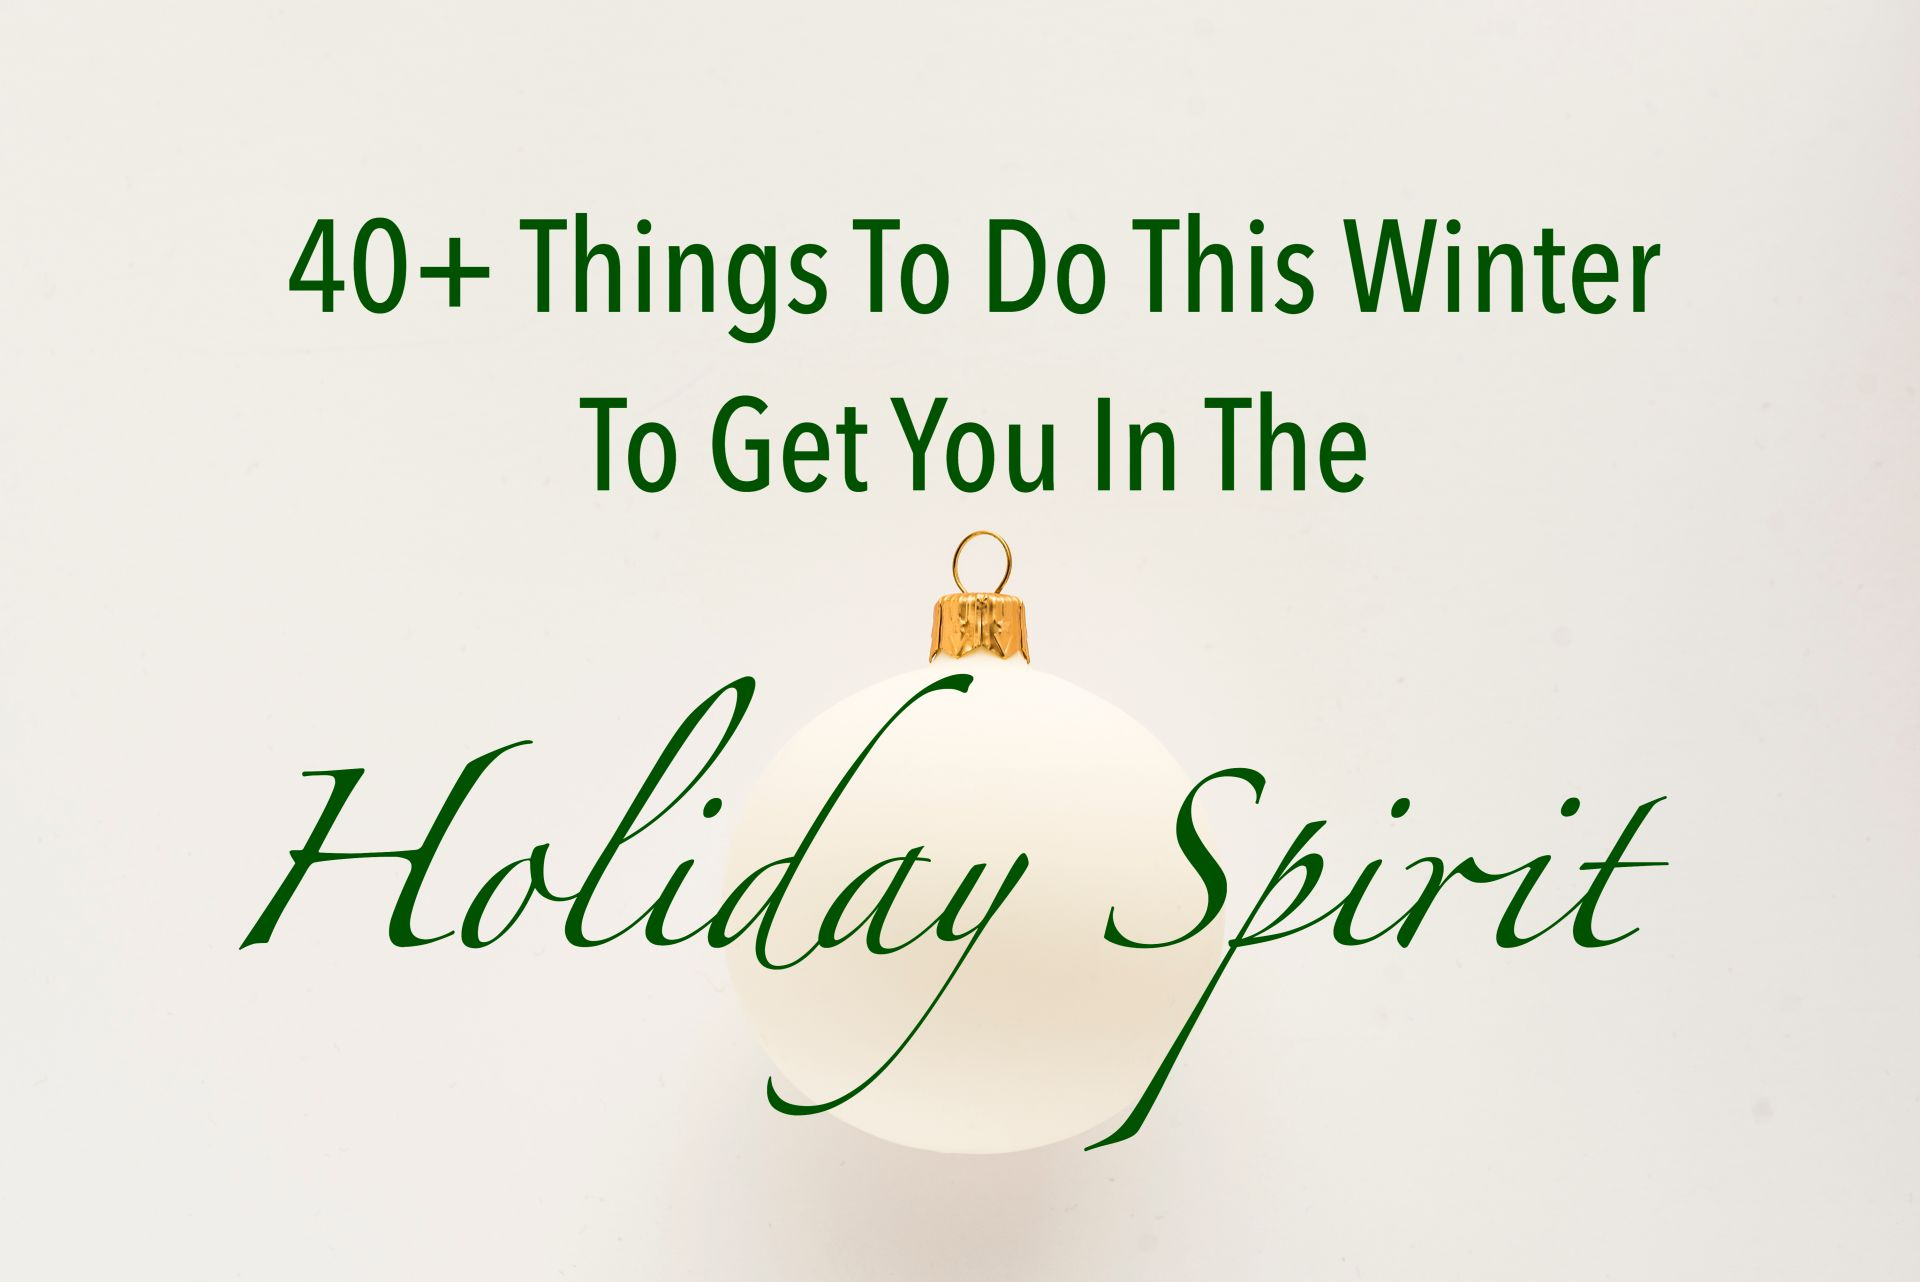 40+ Things To Do This Winter To Get You In The Holiday Spirit